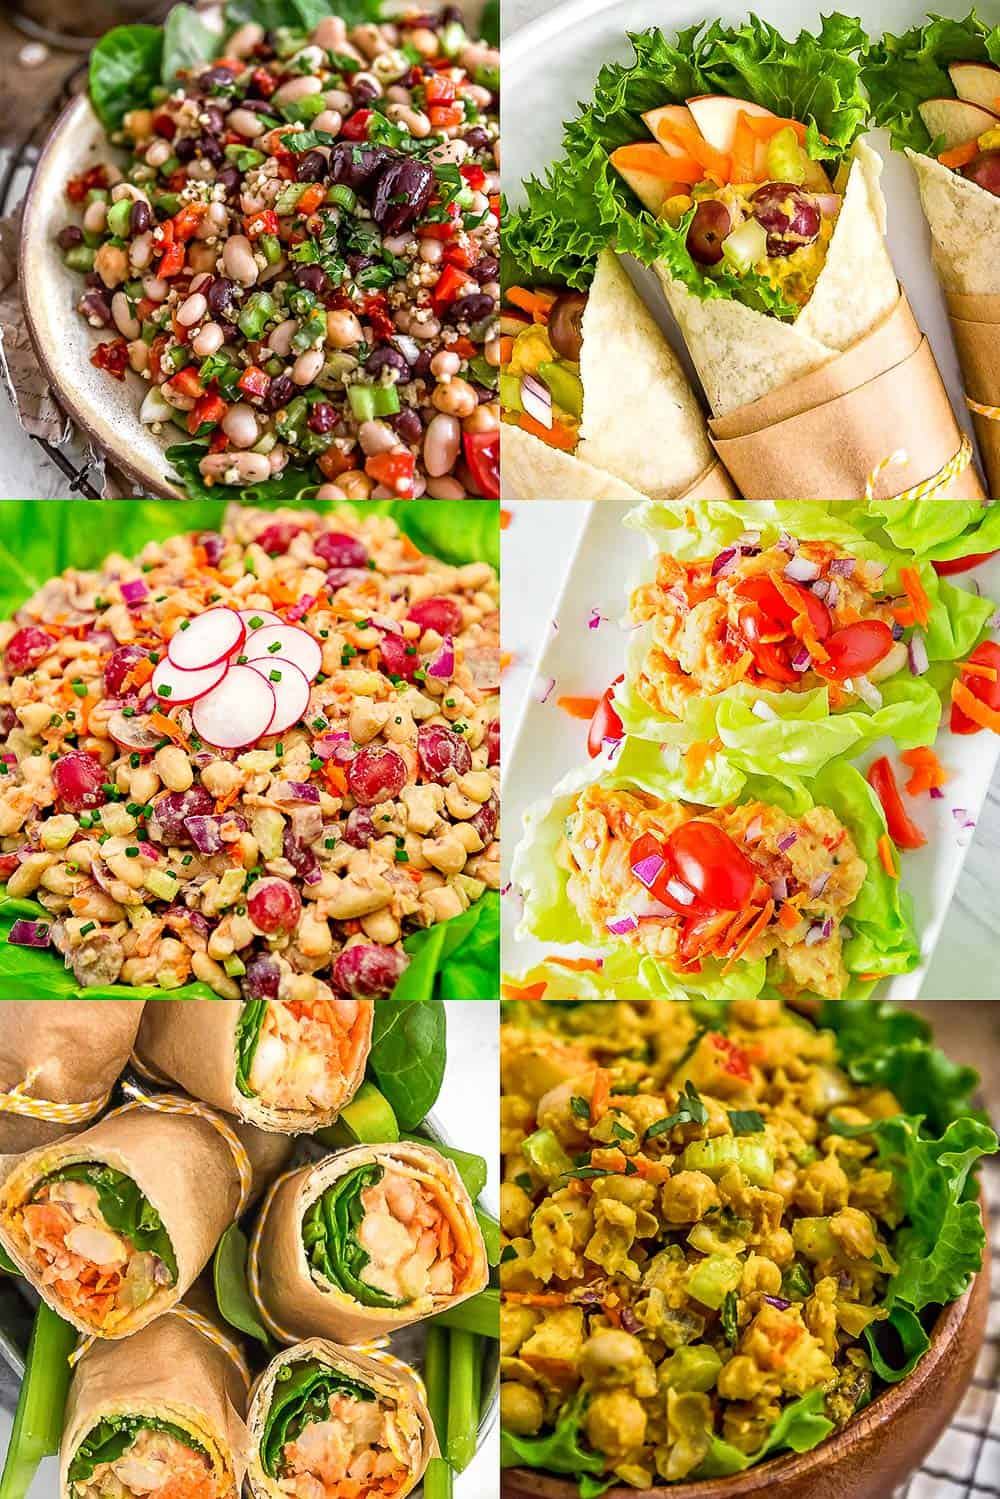 Six Vegan Bean Salad Images